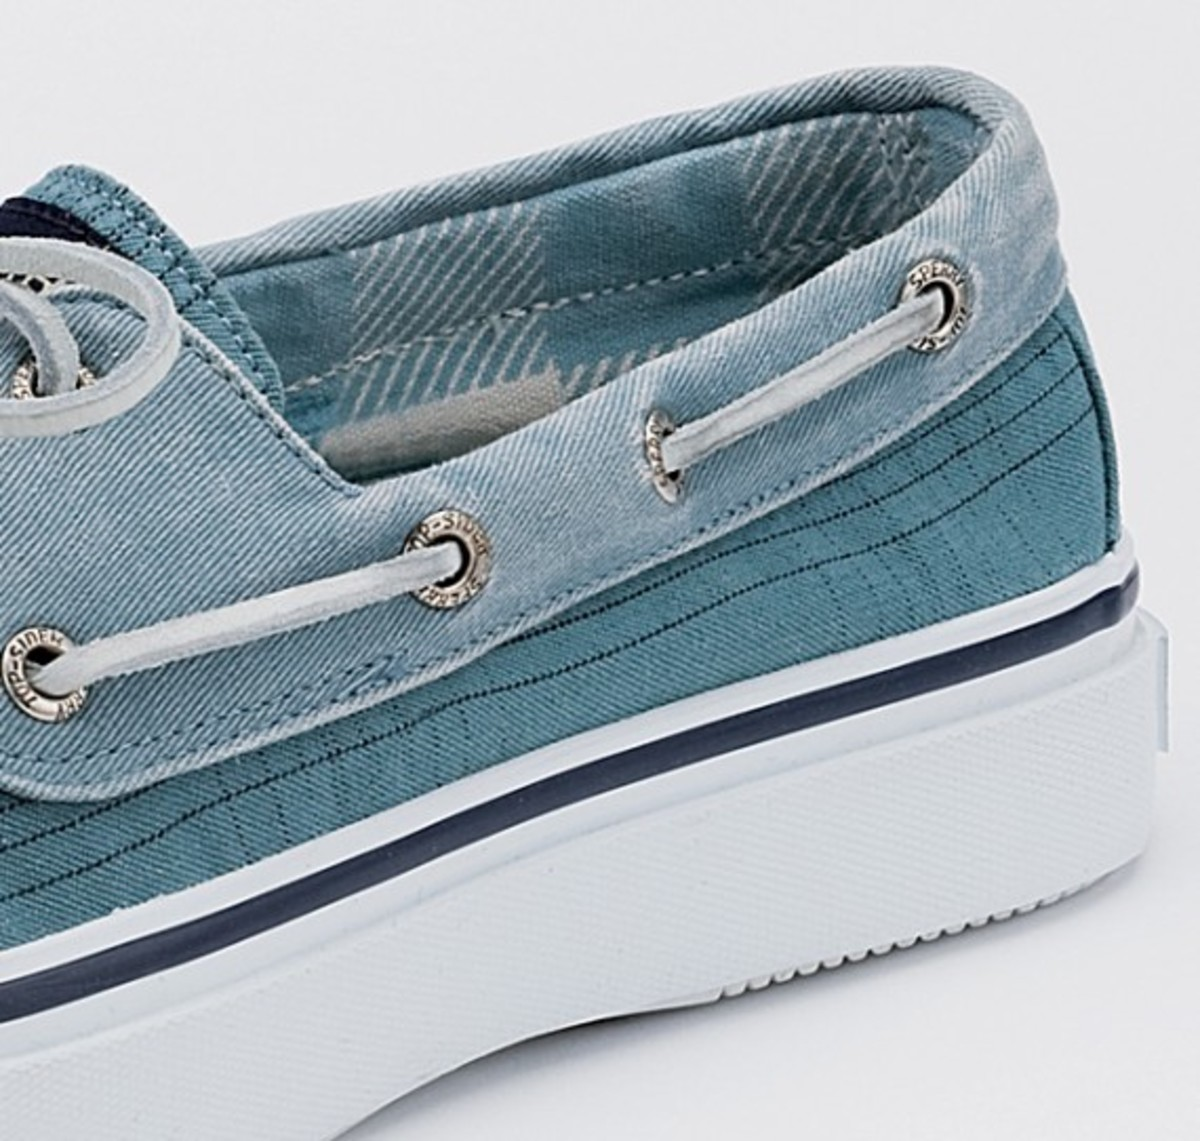 sperry_topsider_ss2010_7